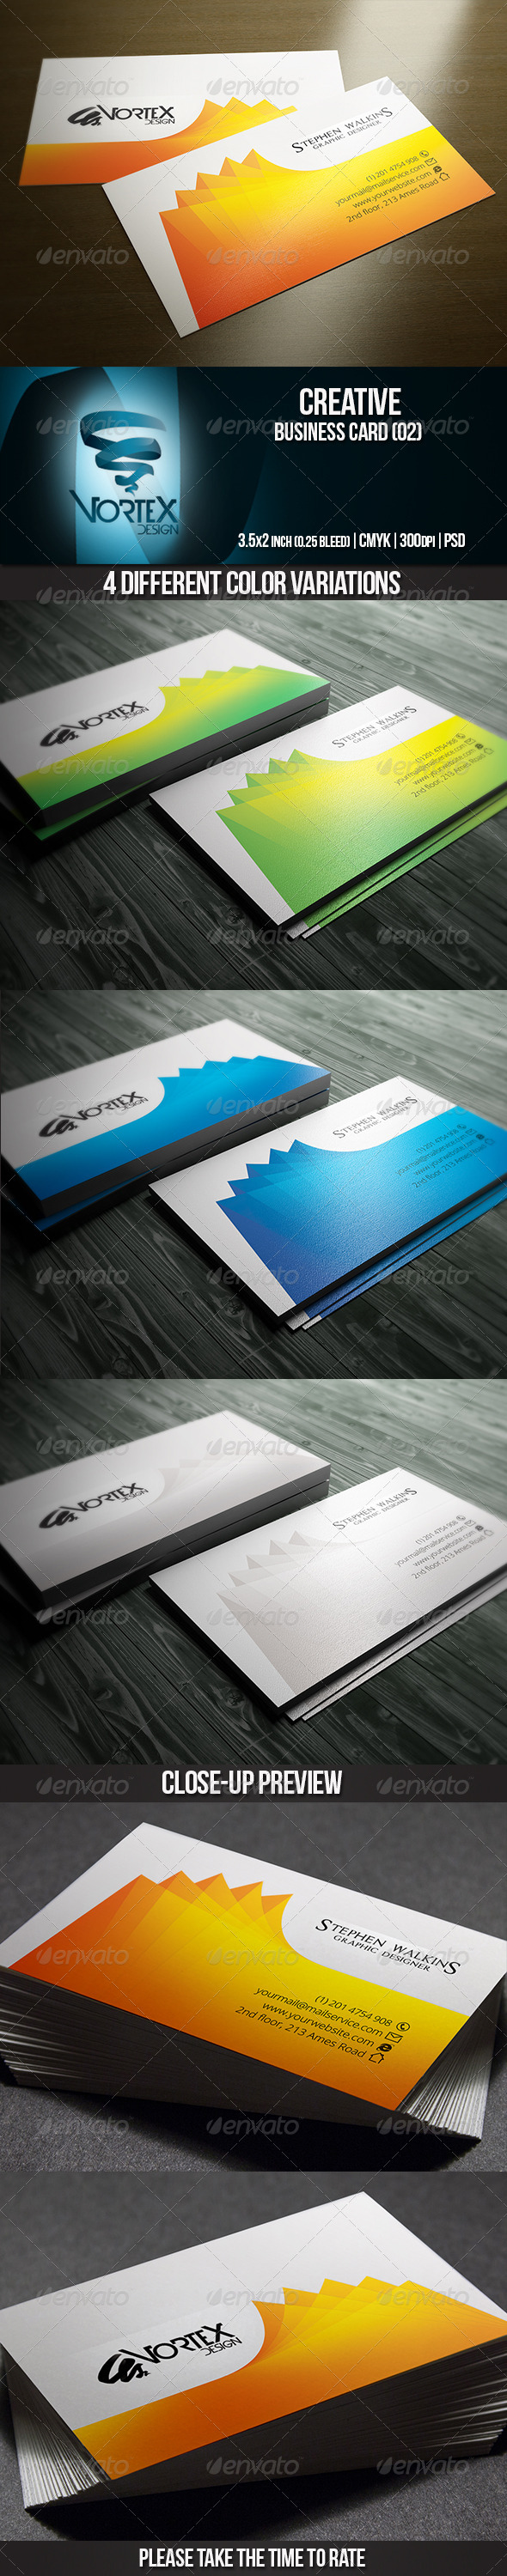 GraphicRiver Creative Business Card 02 5681239